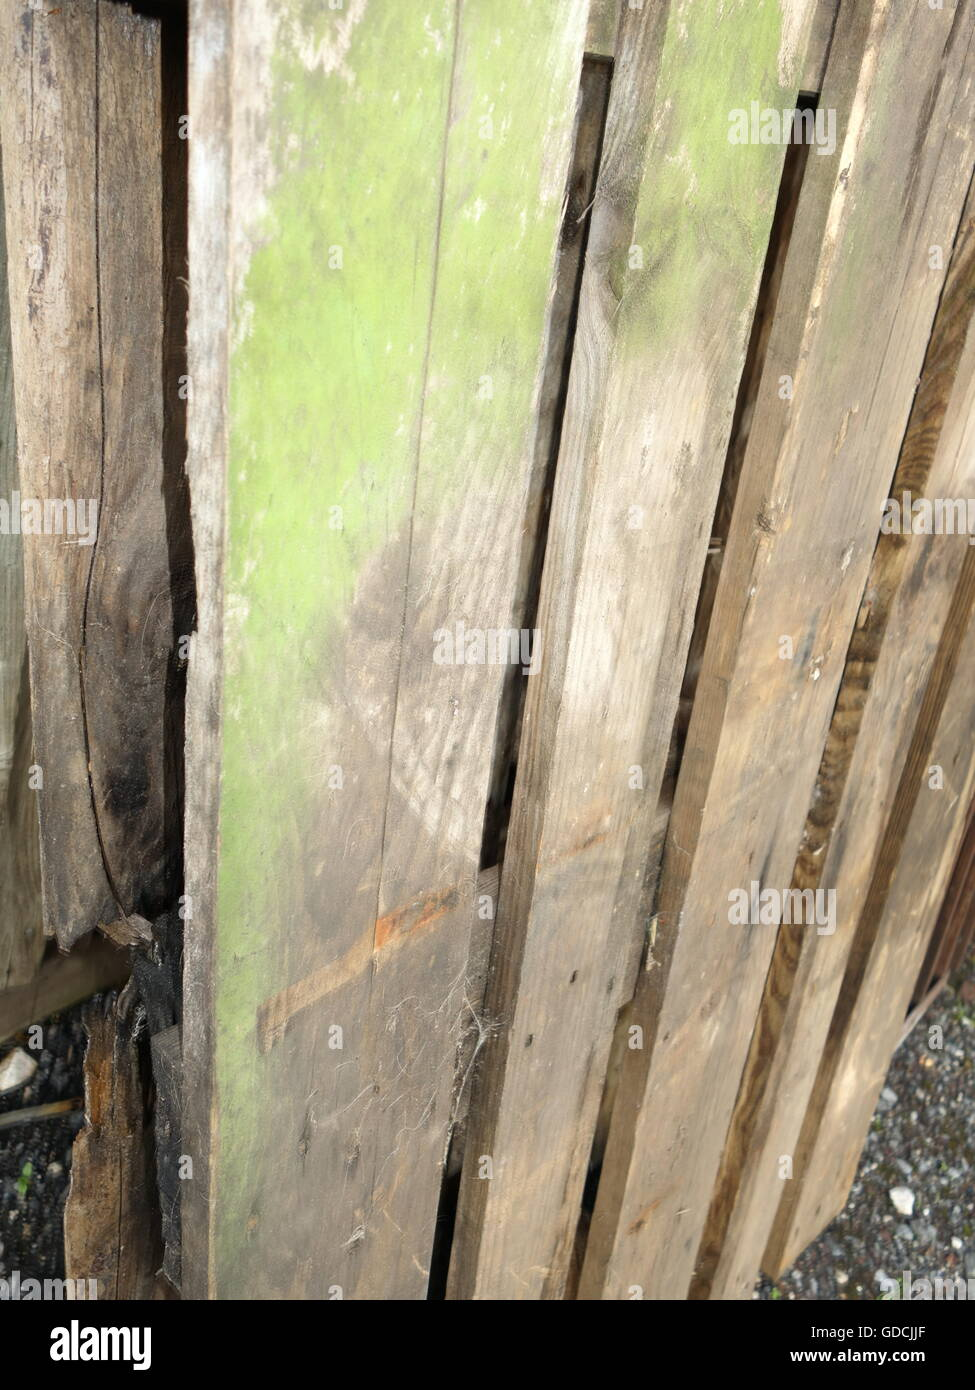 A Wooden Crate Texture